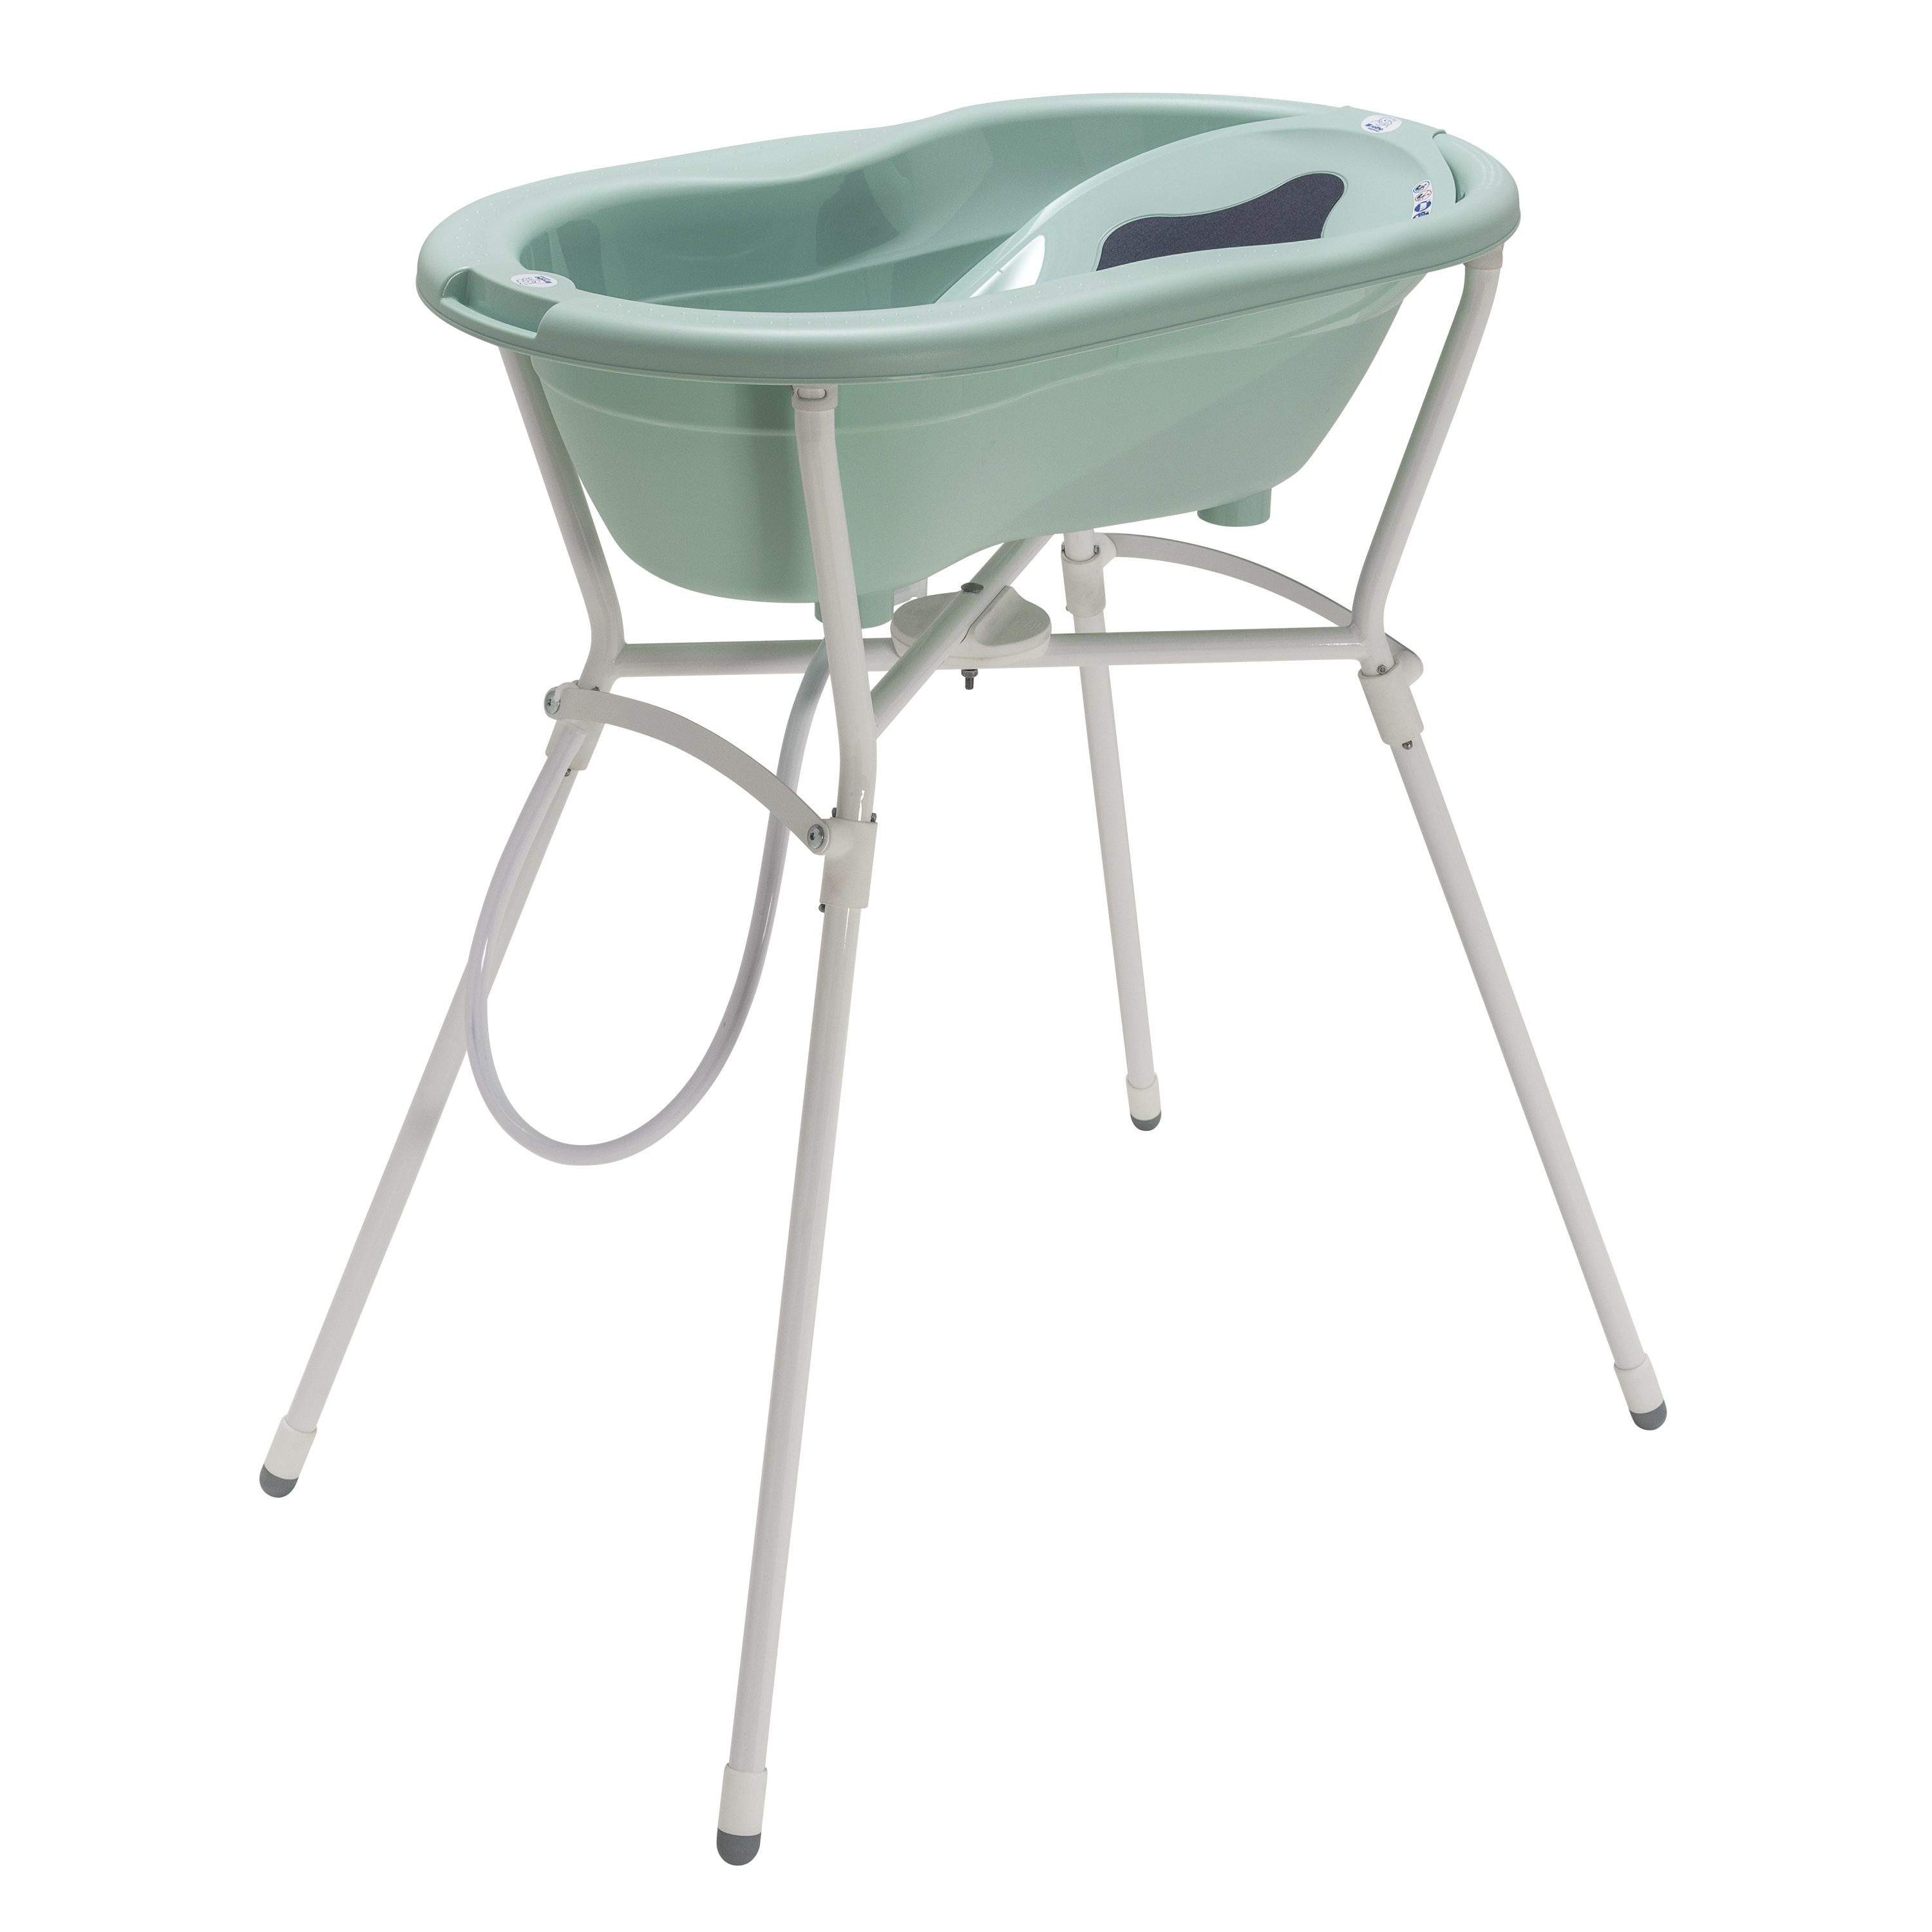 Rotho Ideal Bathing Solution Top With Foldable Bathtub Stand   Swedish Green